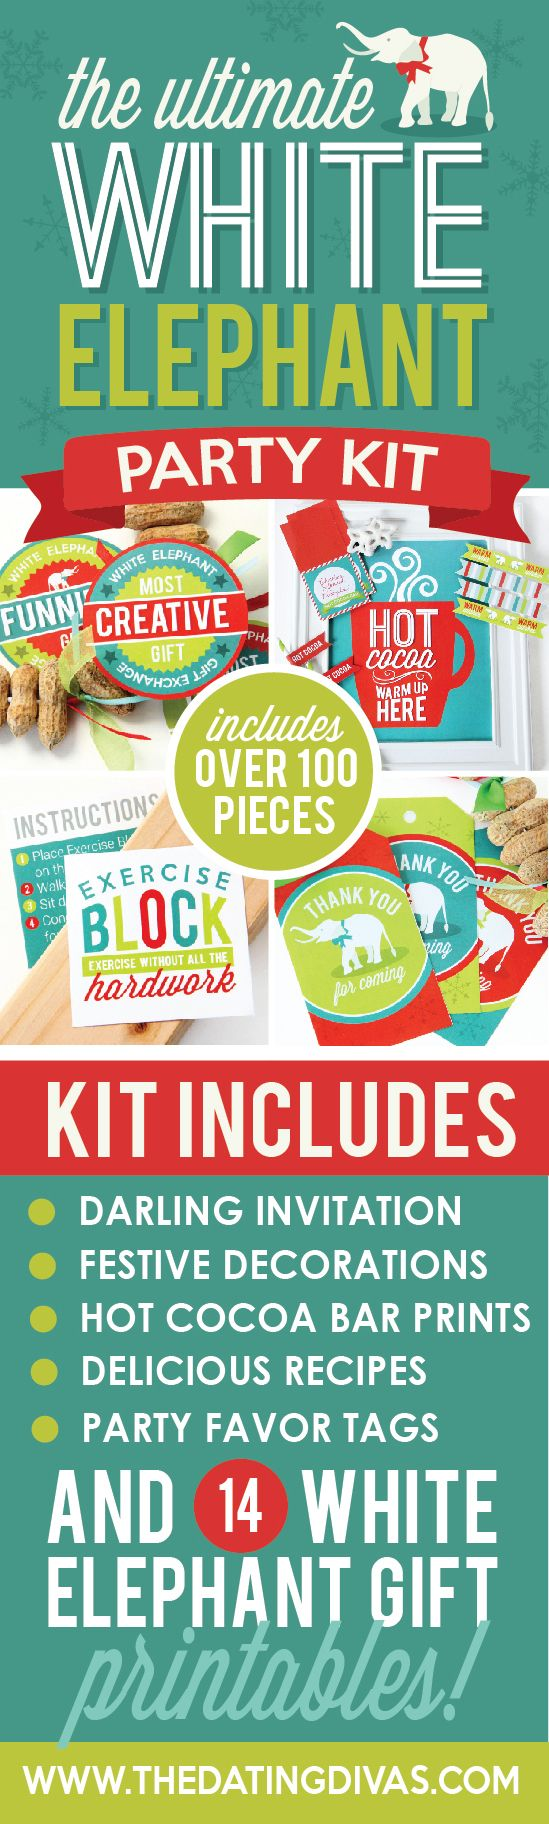 White Elephant Party Printable Kit   From The Dating Divas   White ...